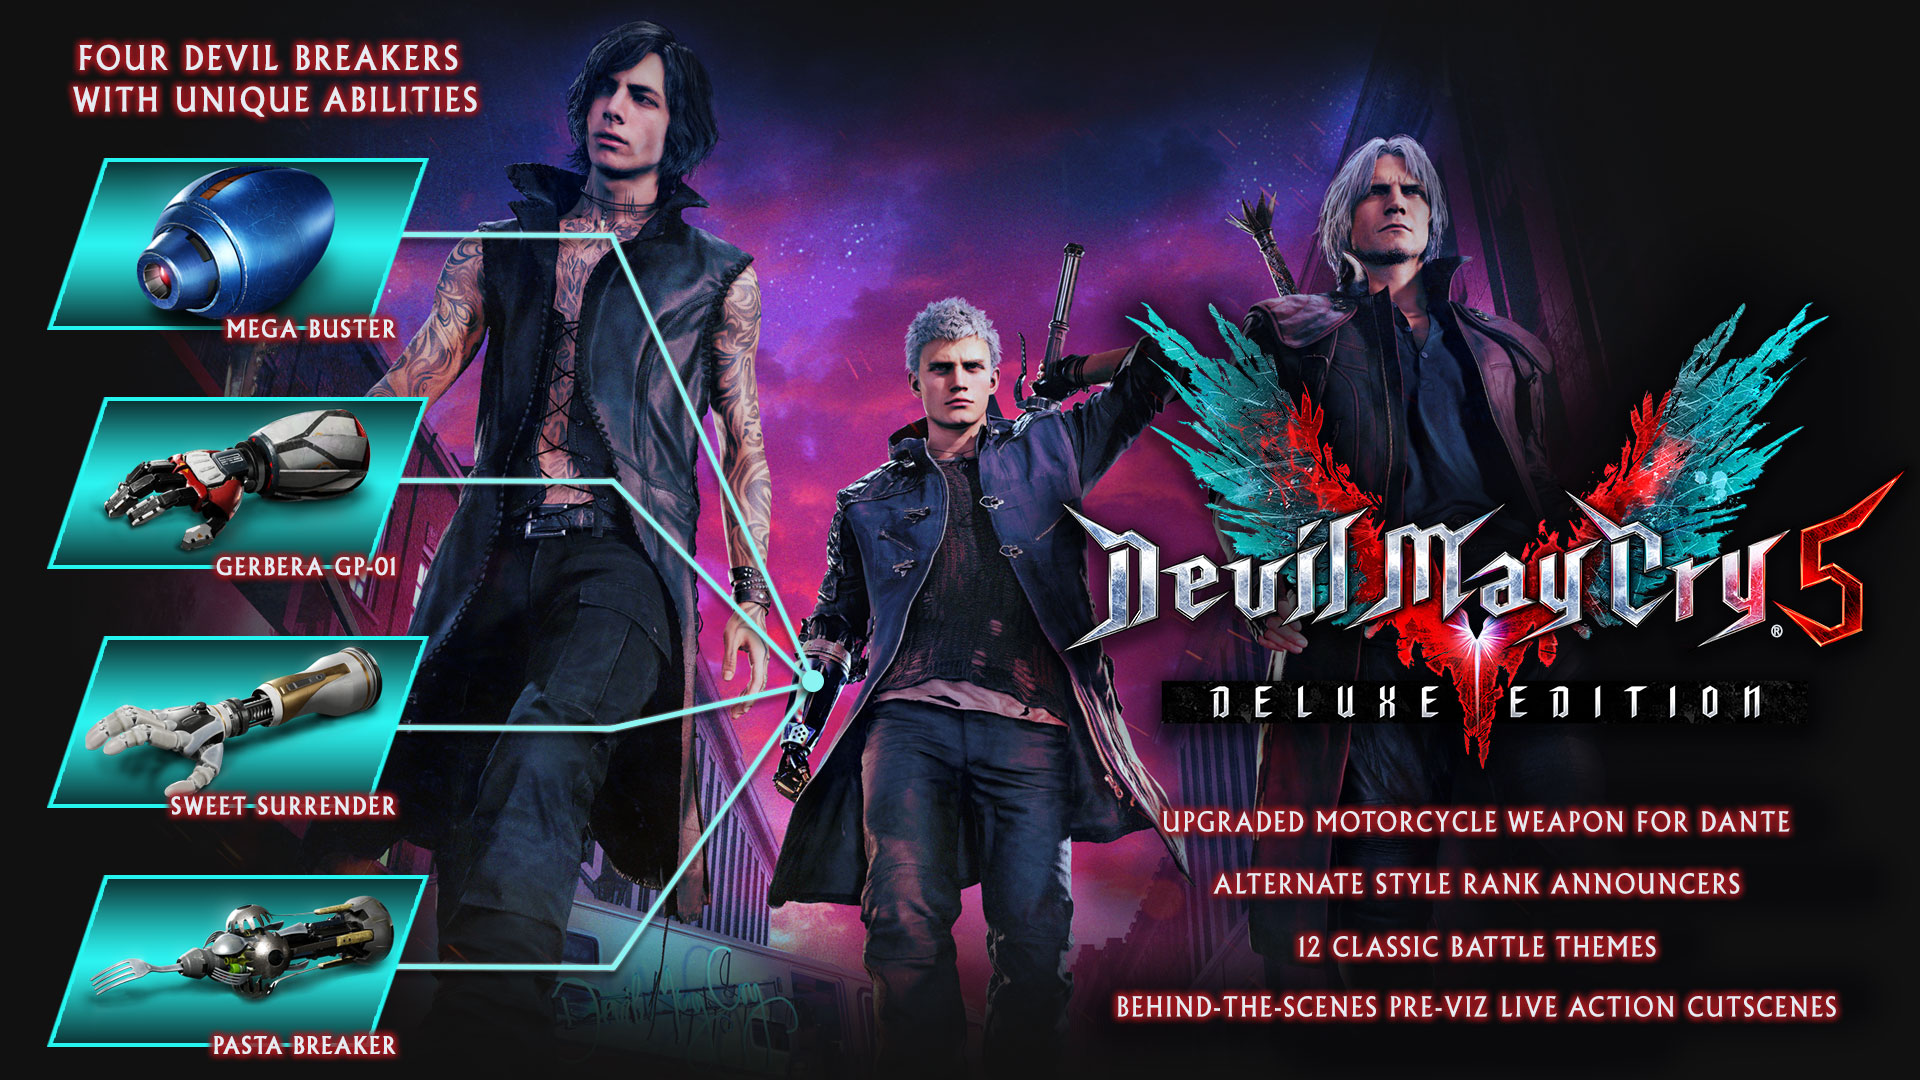 Devil-May-Cry-Deluxe-Edition